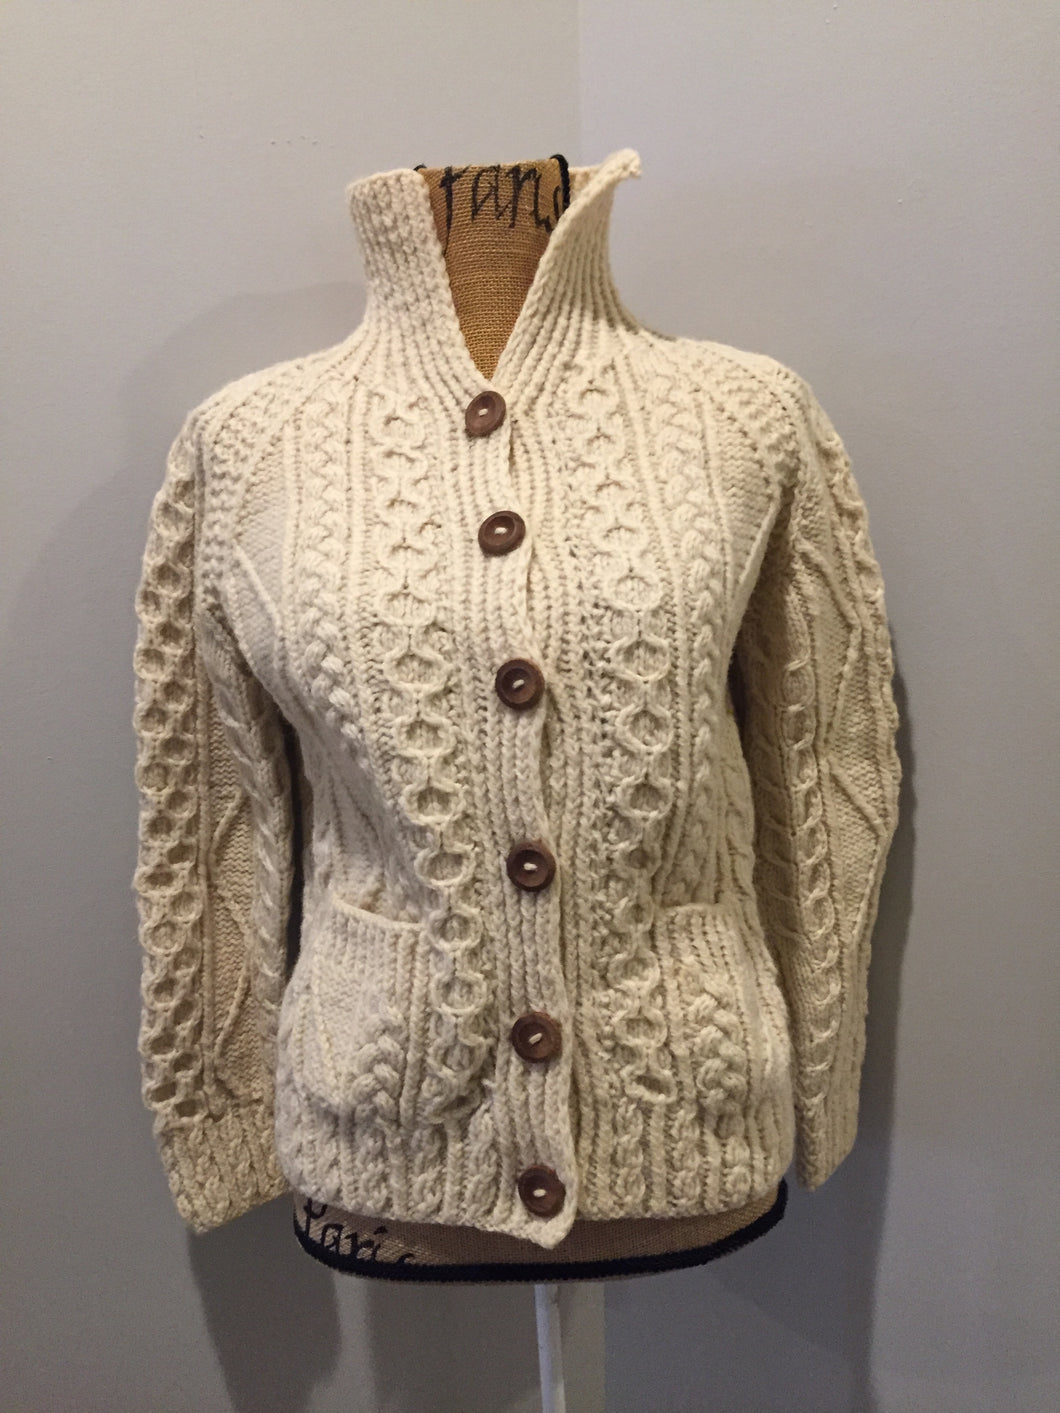 Fisherman's style honeycomb, diamond and braided knit wool cardigan in cream with button closures and patch pockets. Size small (womens).